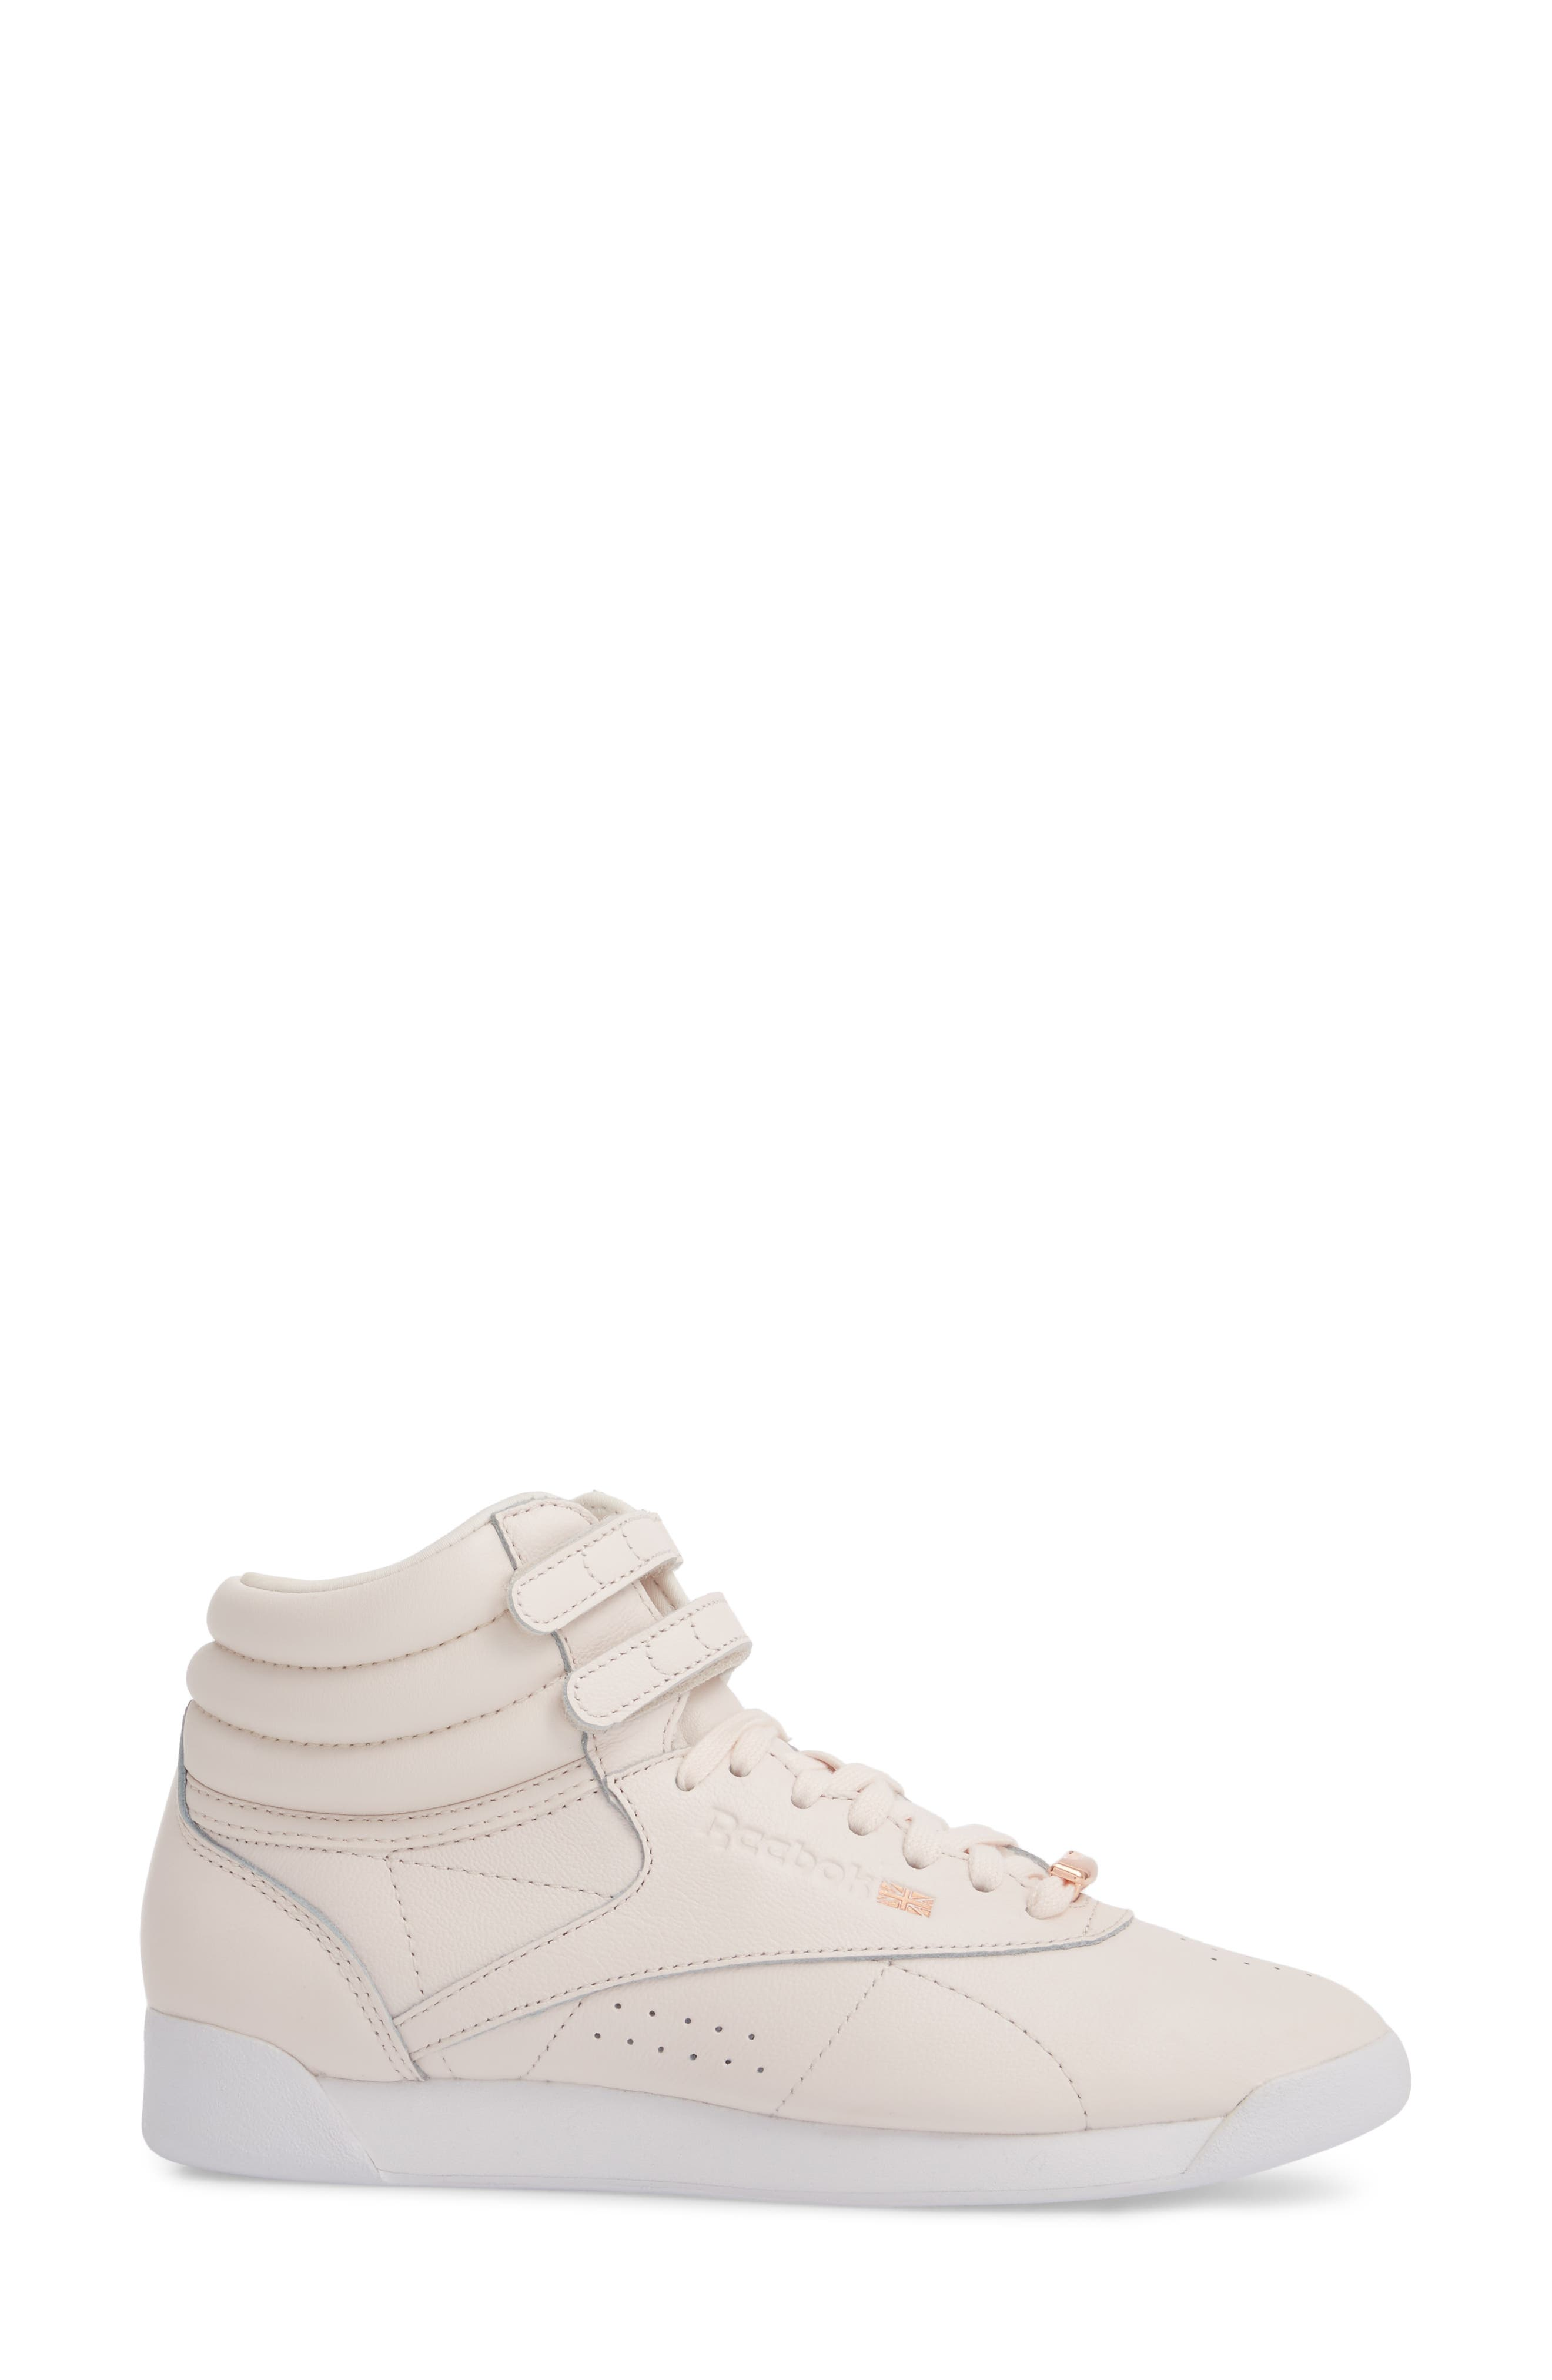 Freestyle Hi Muted Sneaker,                             Alternate thumbnail 3, color,                             Pale Pink/ White/ Cool Shadow